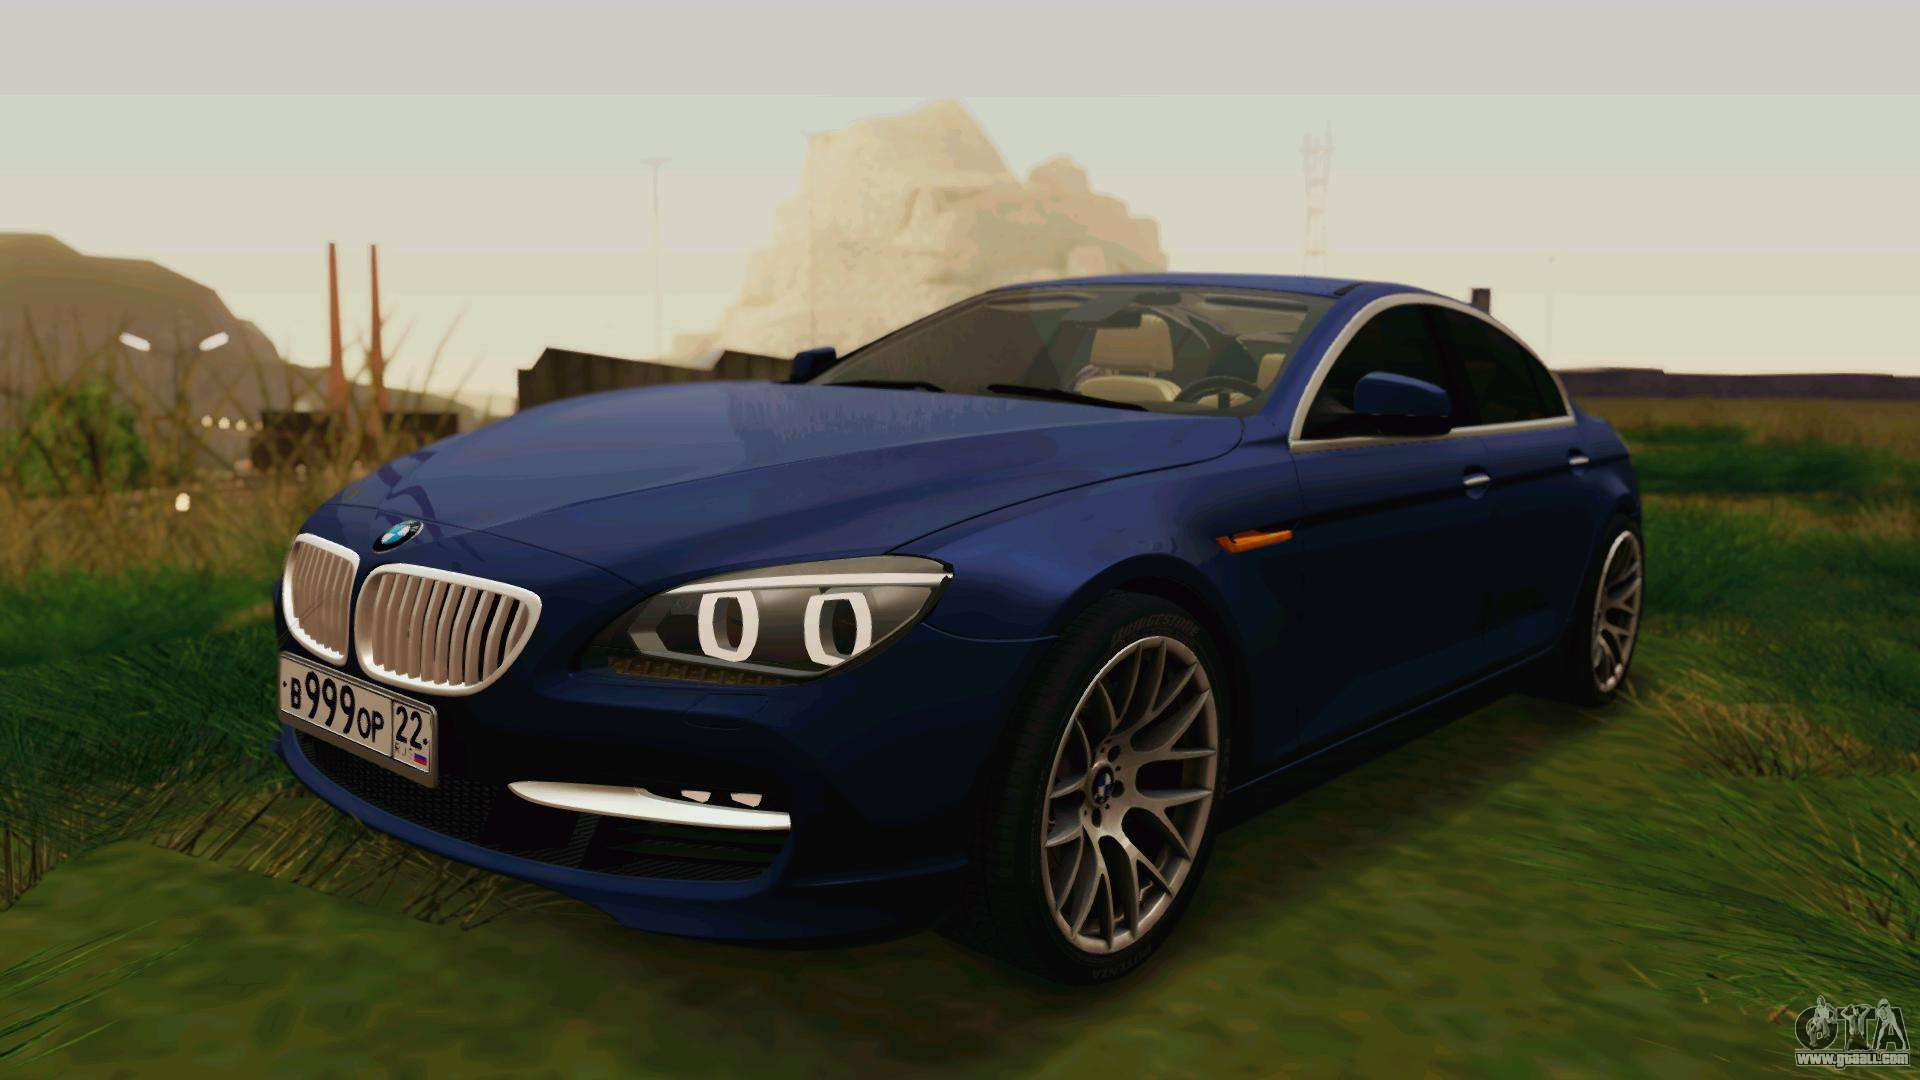 Bmw 6 series gran coupe 2014 for gta san andreas - 2014 bmw 650i gran coupe ...